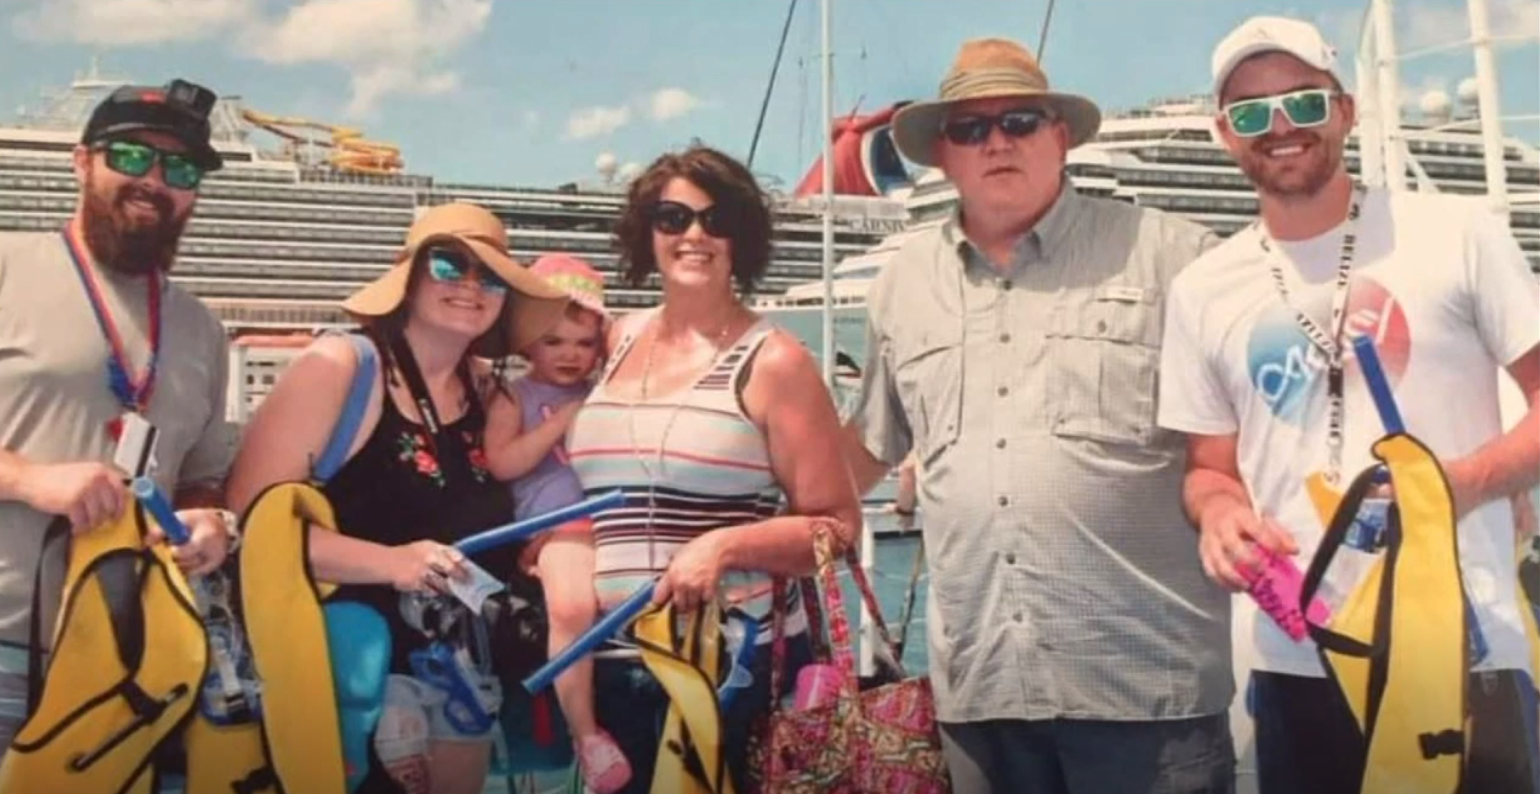 Family, friends mourn death of Silsbee man who drowned at Lake Sam Rayburn